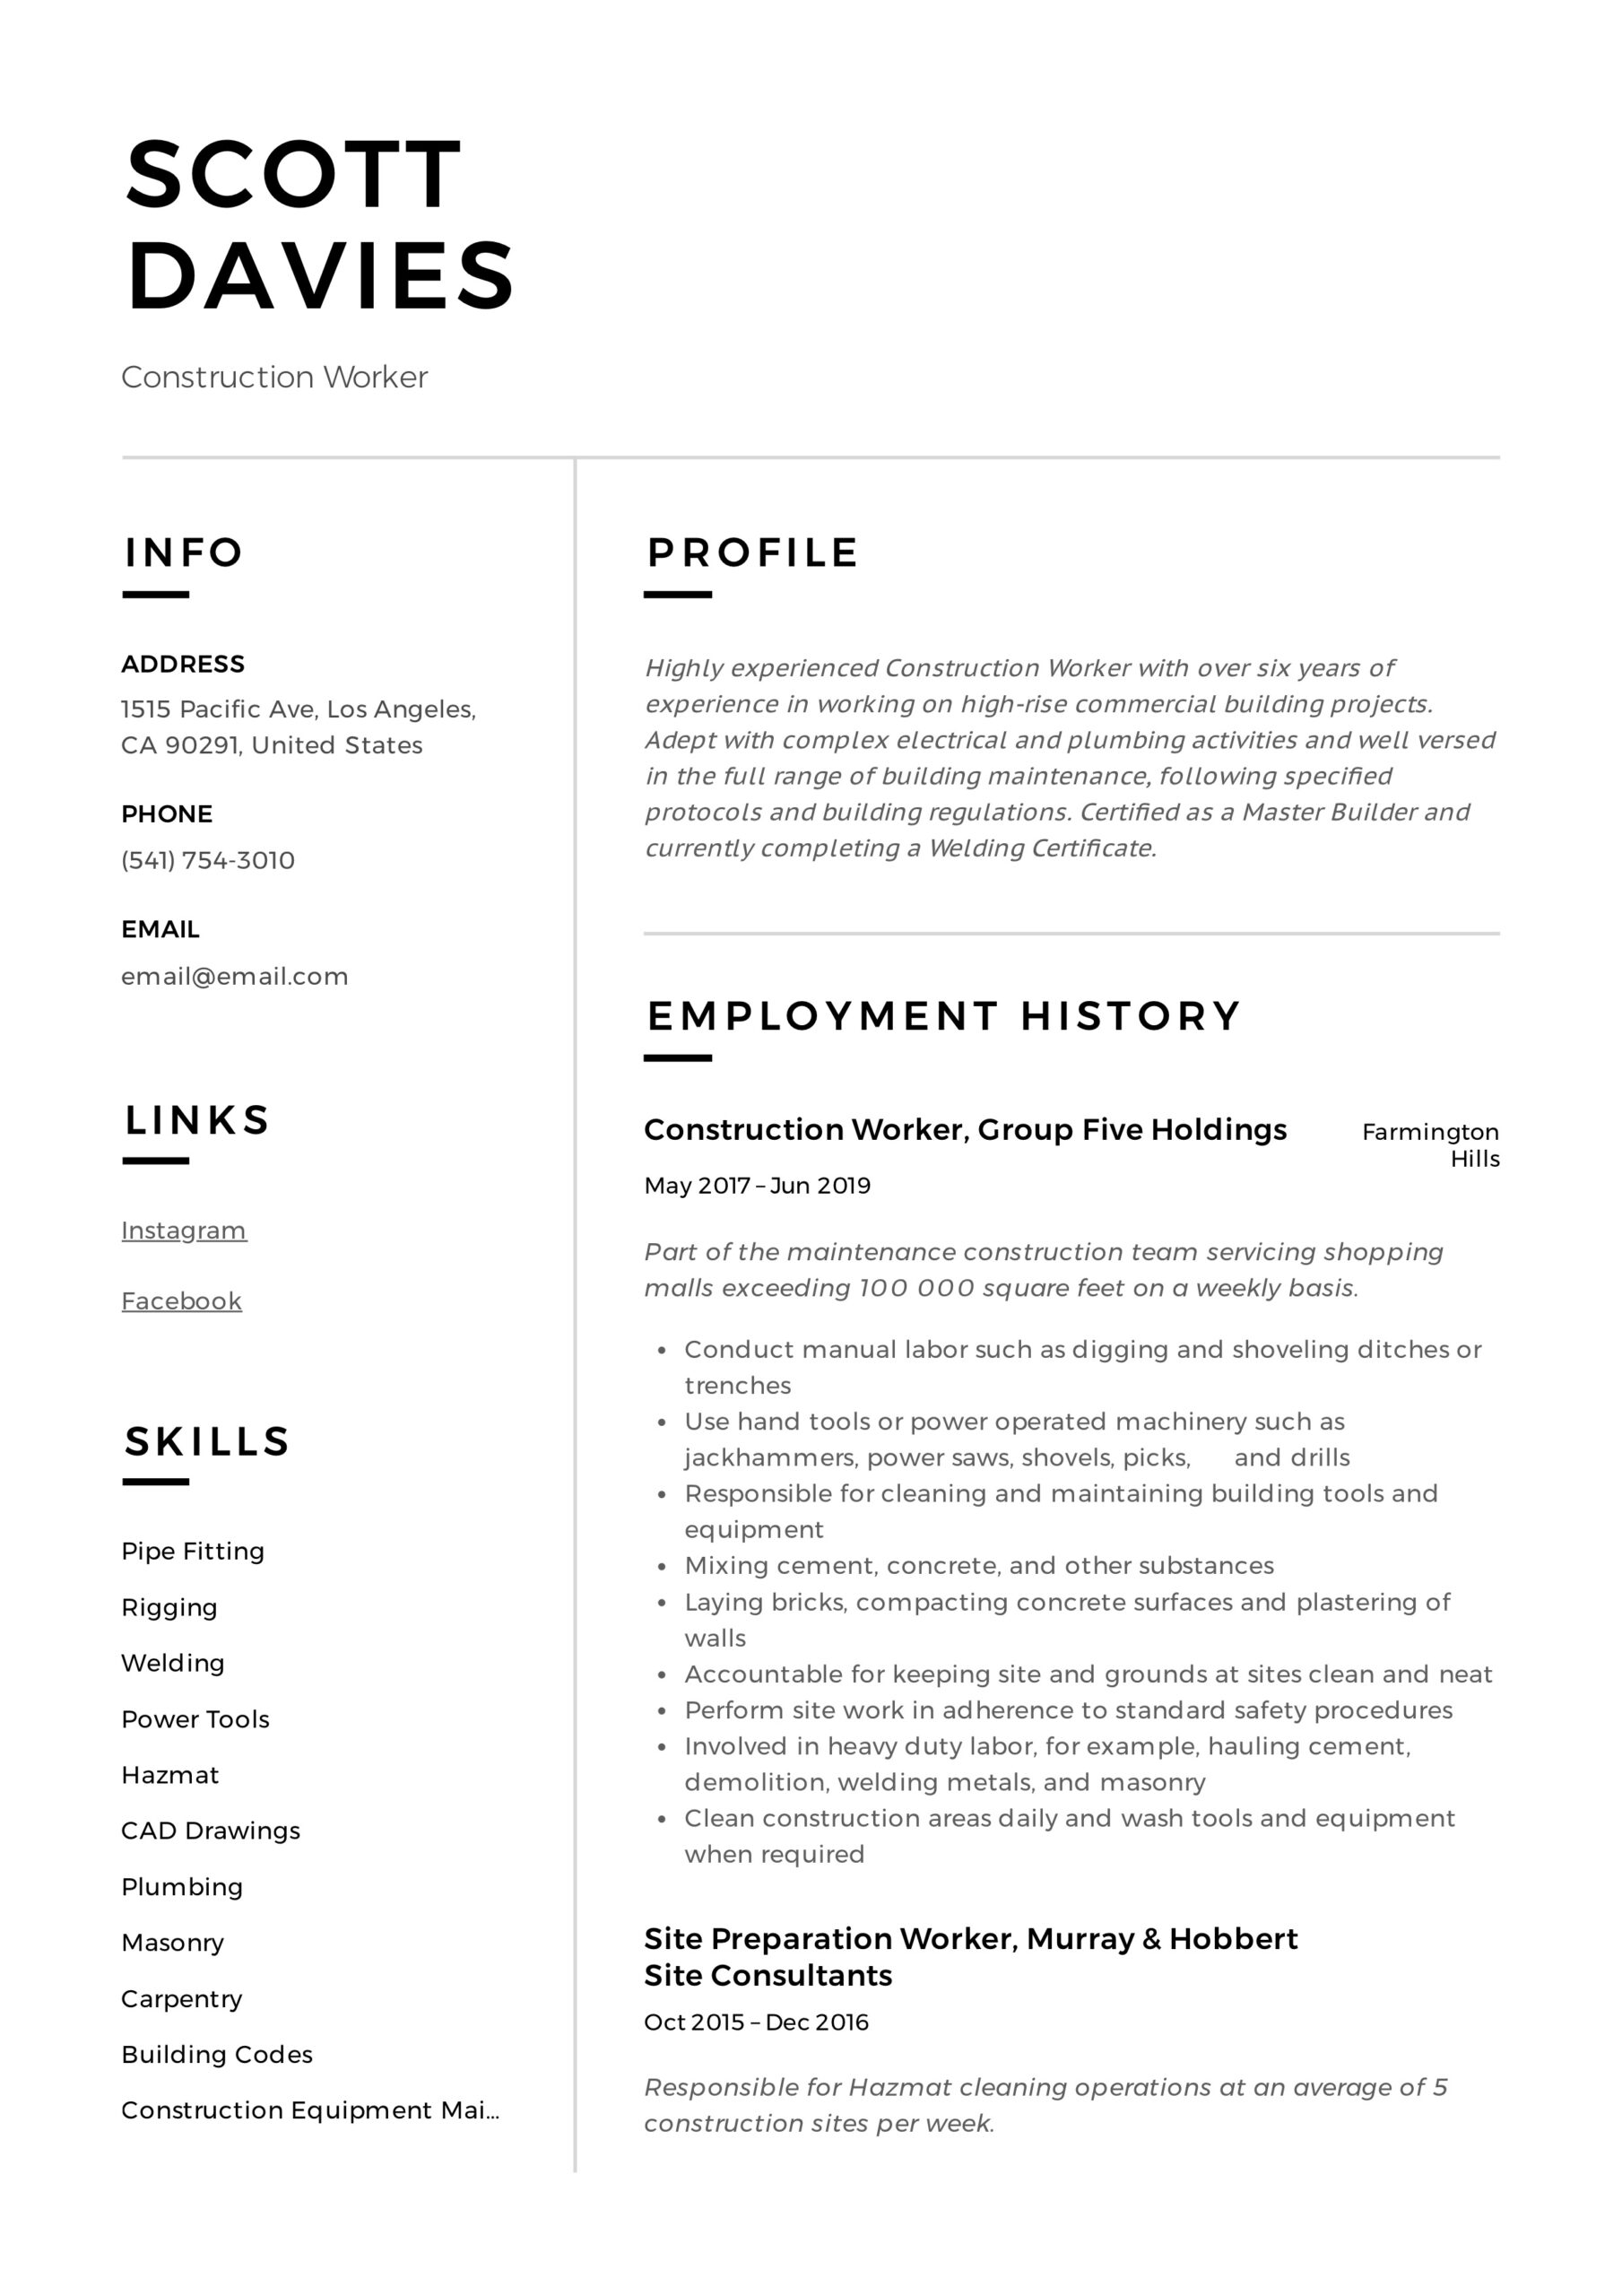 construction worker resume writing guide templates skills functional template Resume Construction Resume Skills